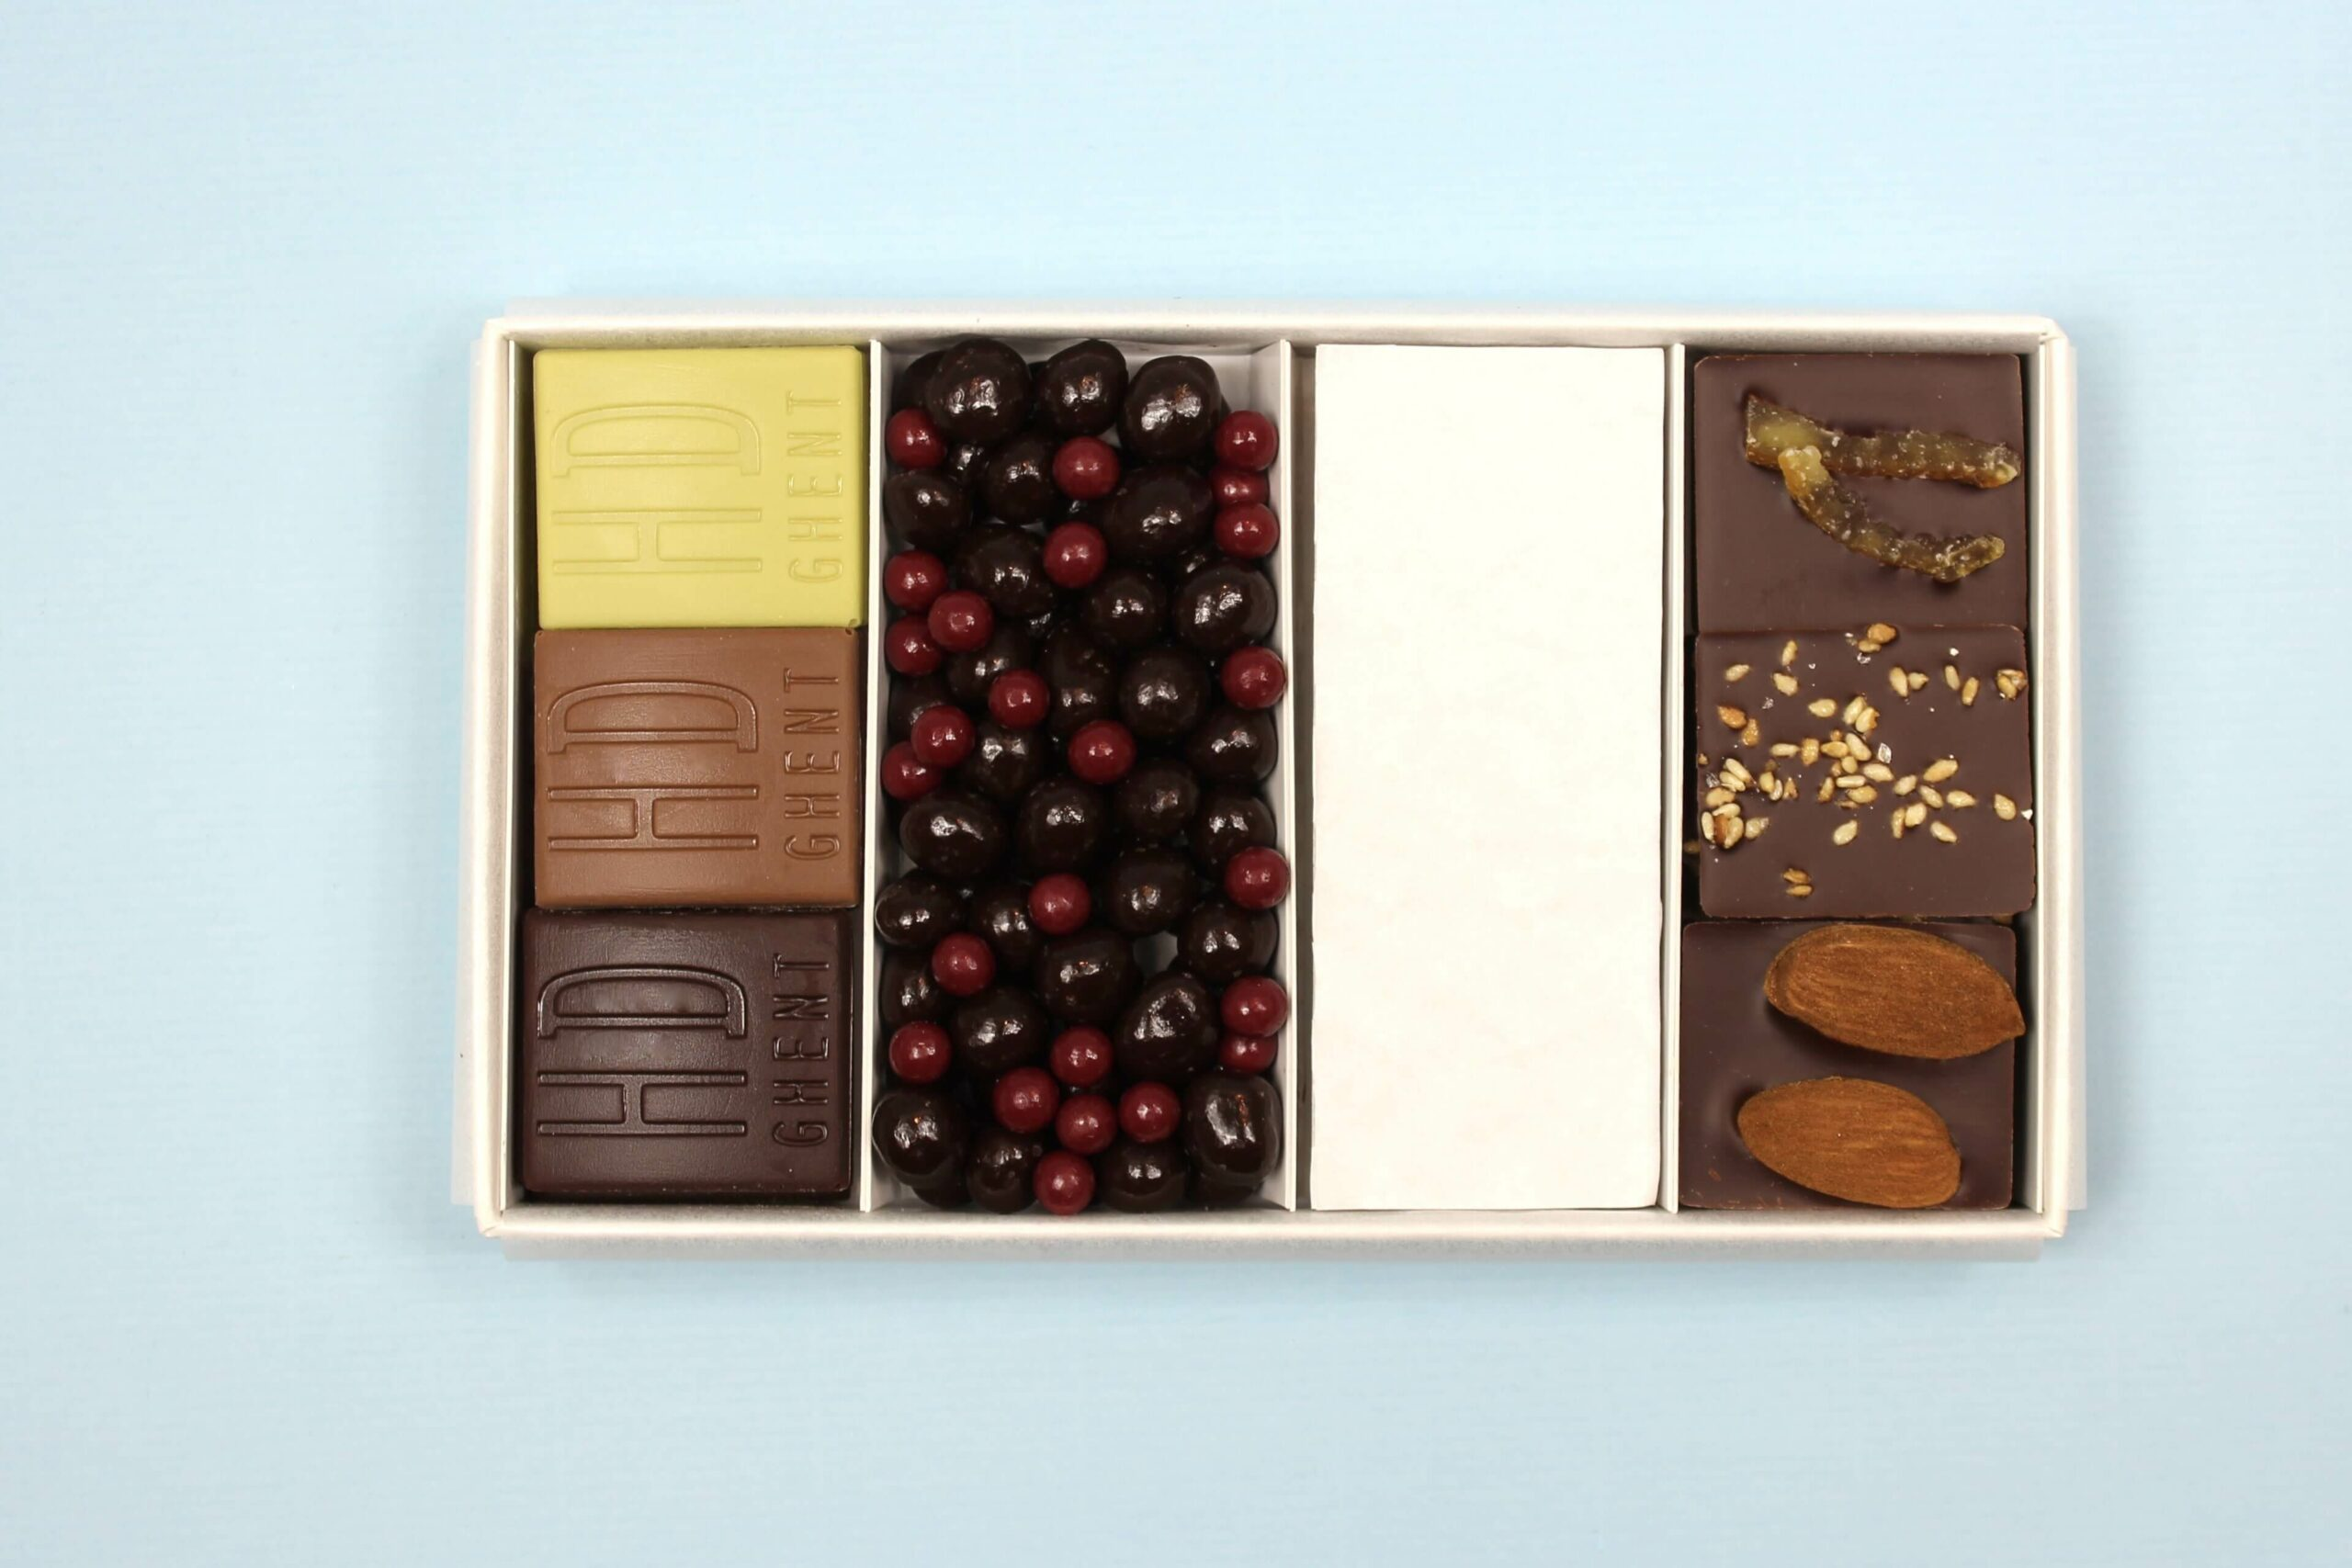 hd ghent by hilde devolder chocolatier degustation box small with white protection